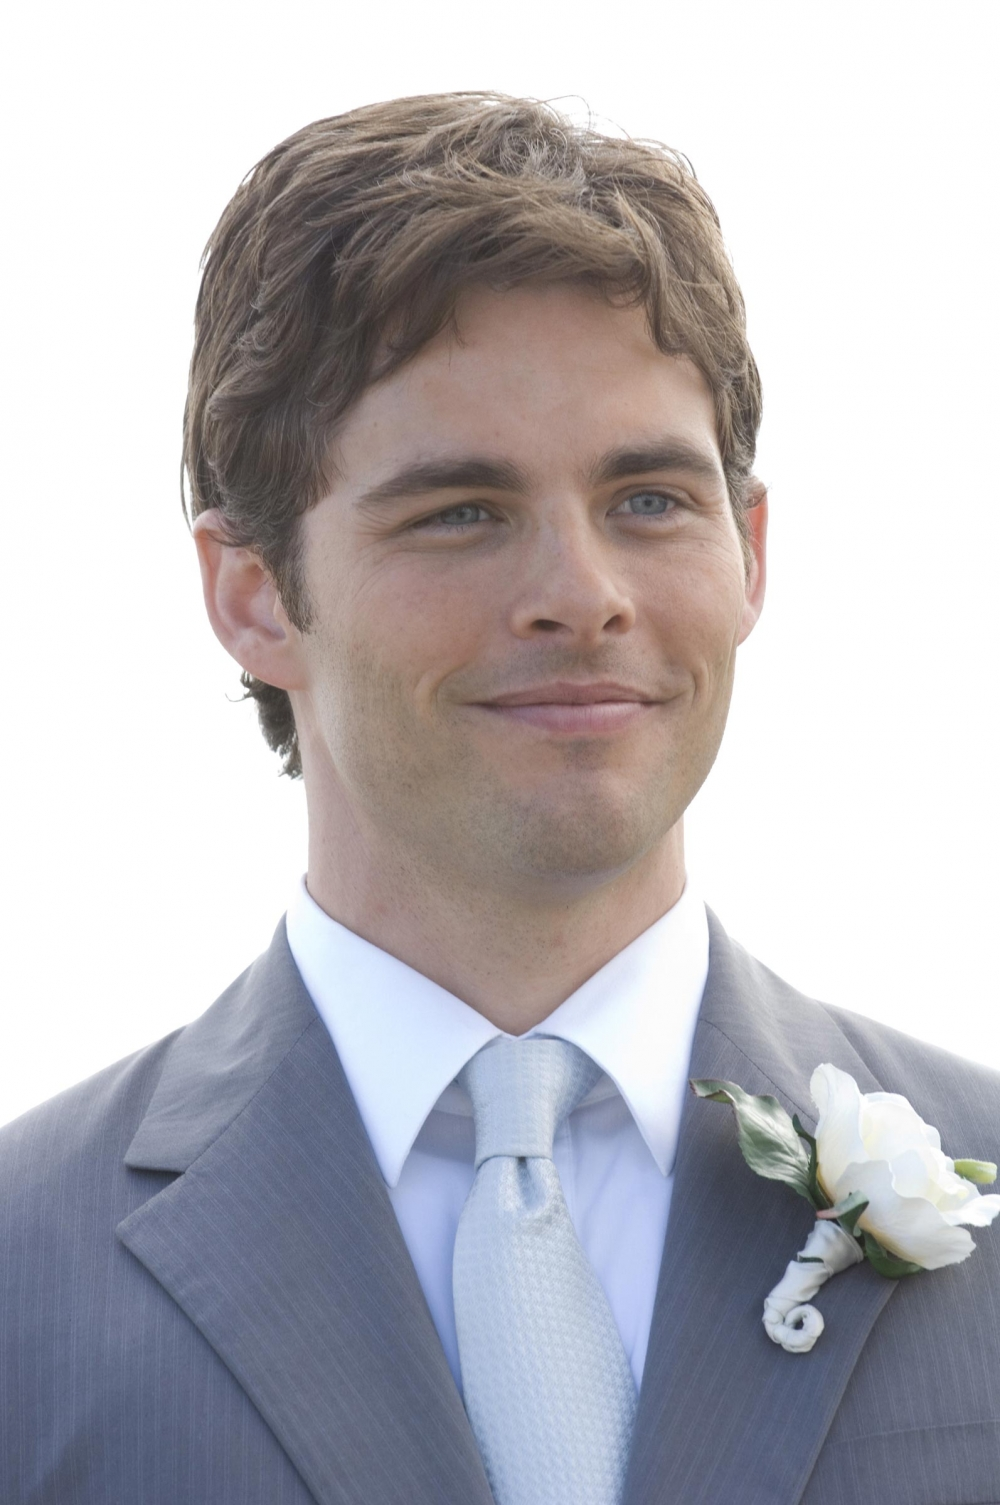 James marsden wedding